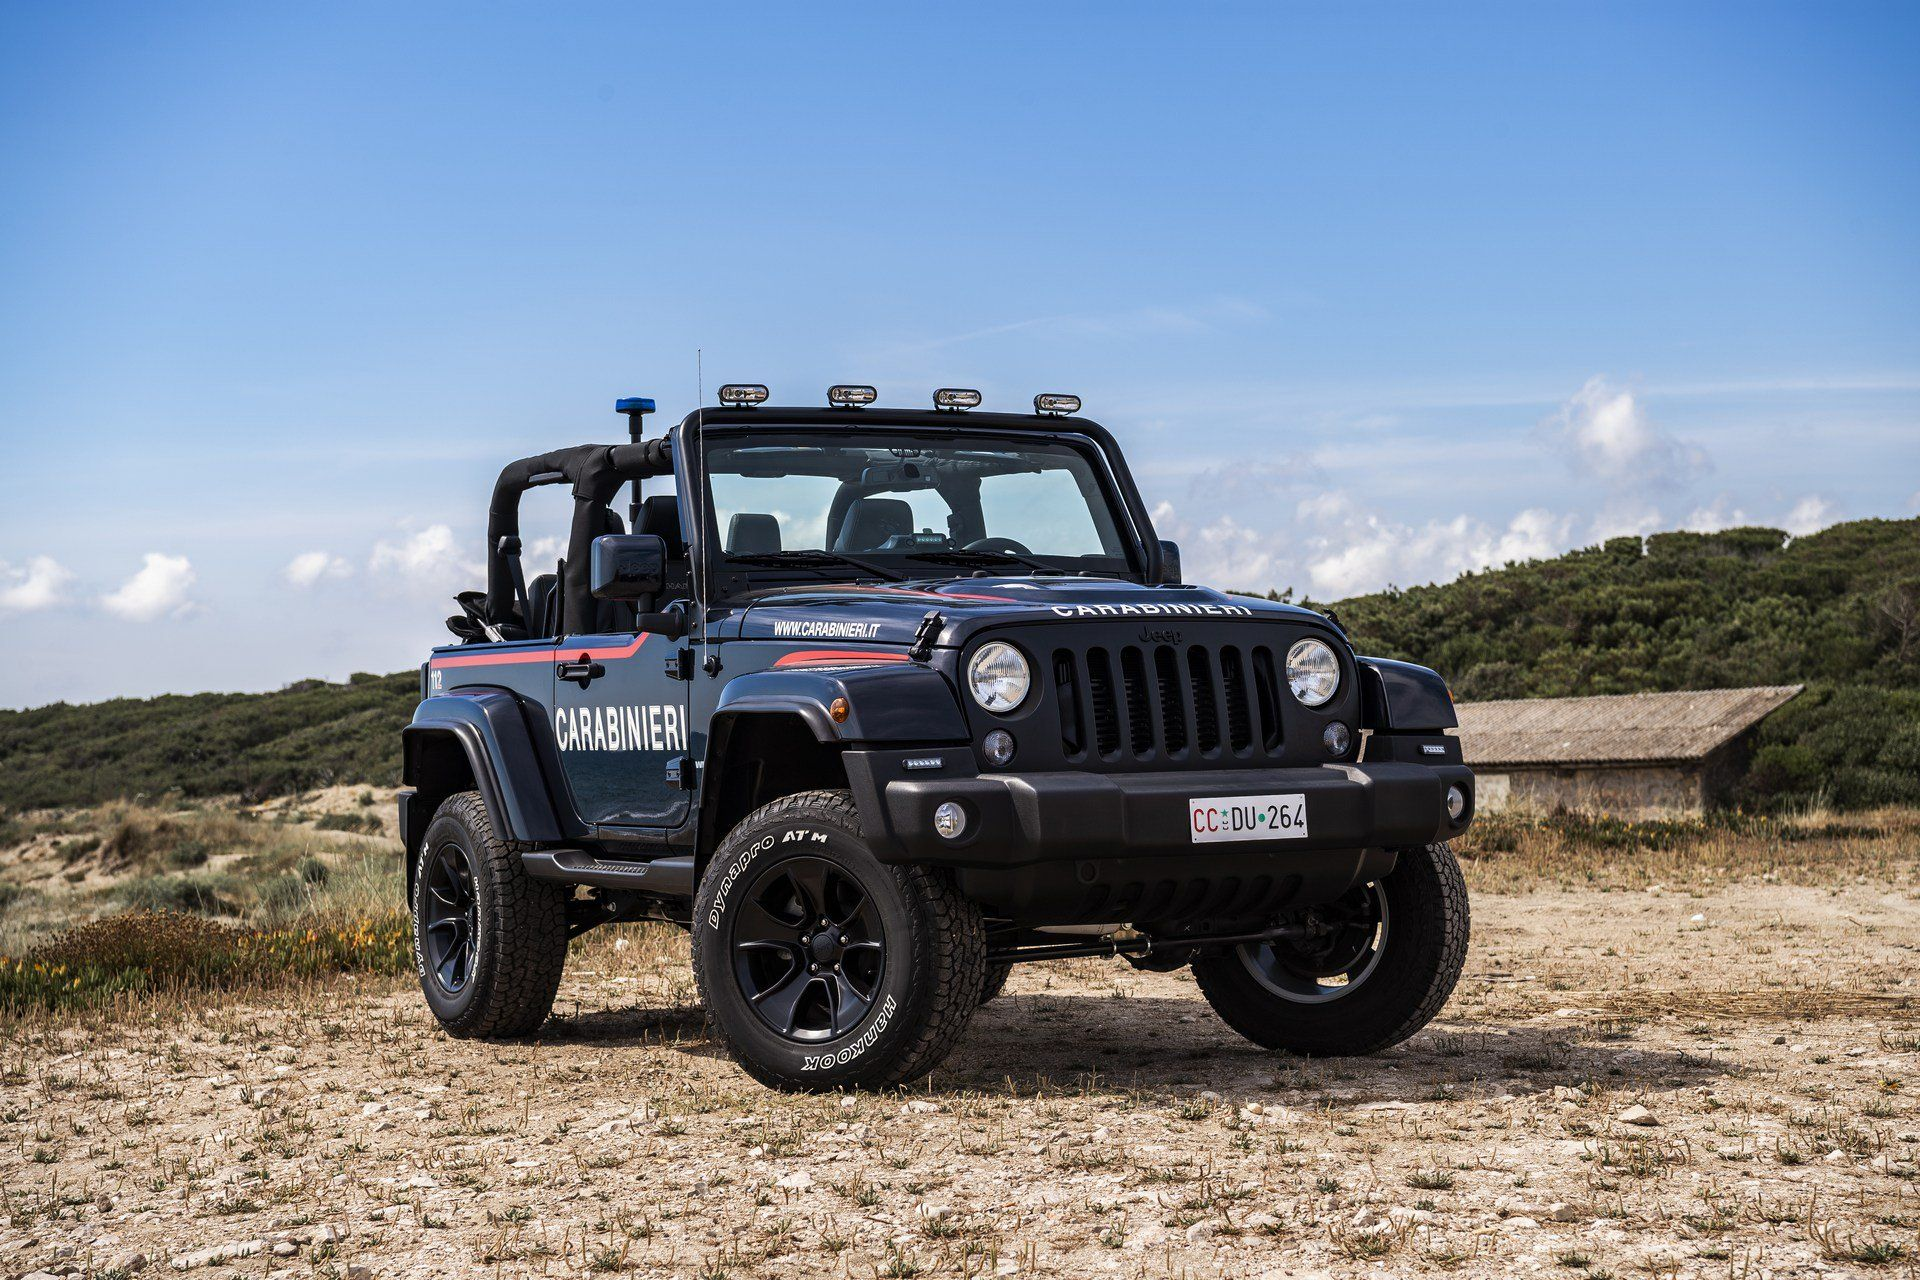 Italy S Carabinieri Has A Cool New Jeep Wrangler Jk For Patrolling